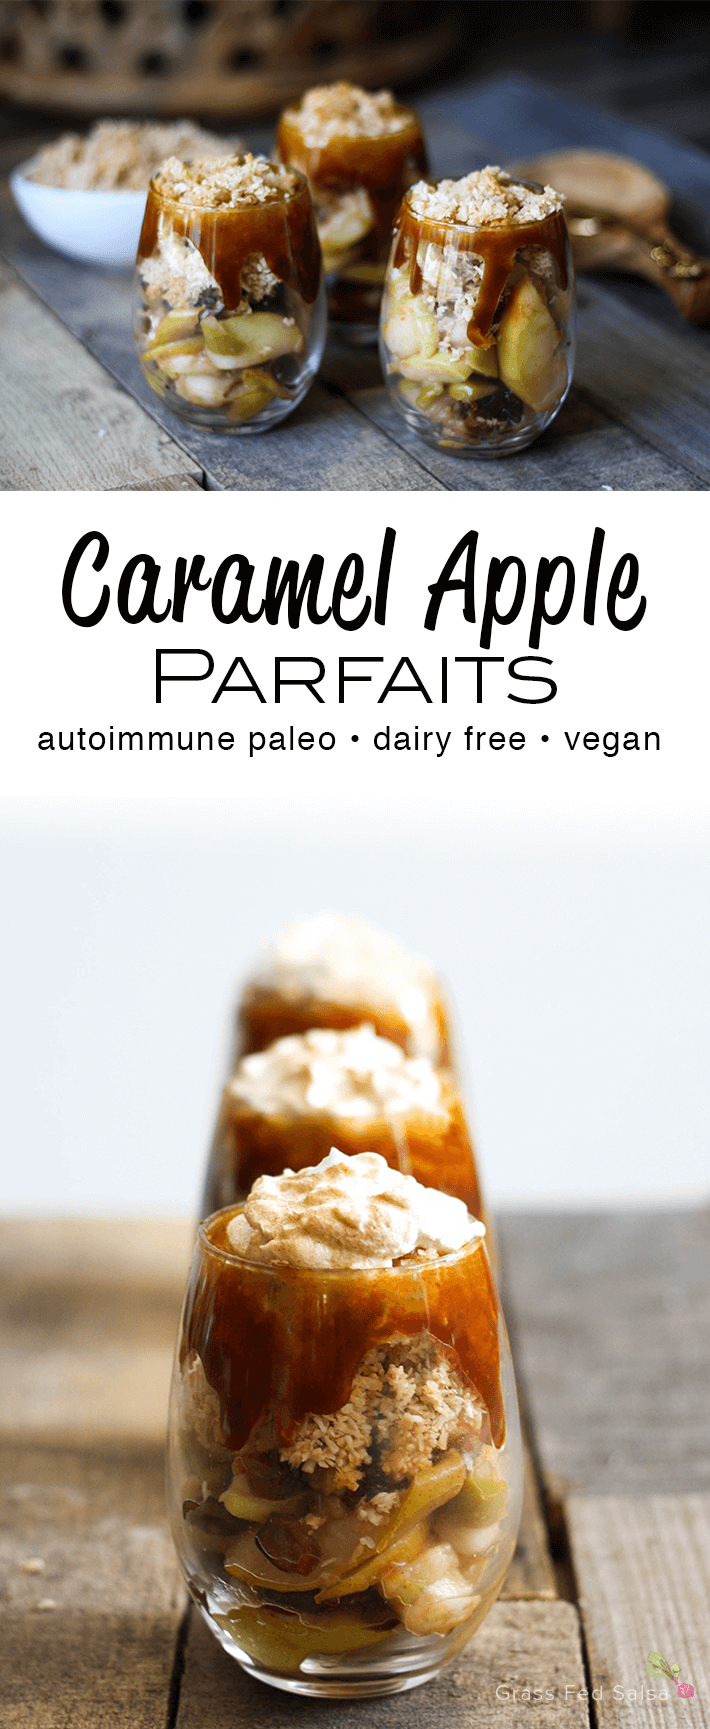 Caramel Apple Parfaits lined up on wooden table